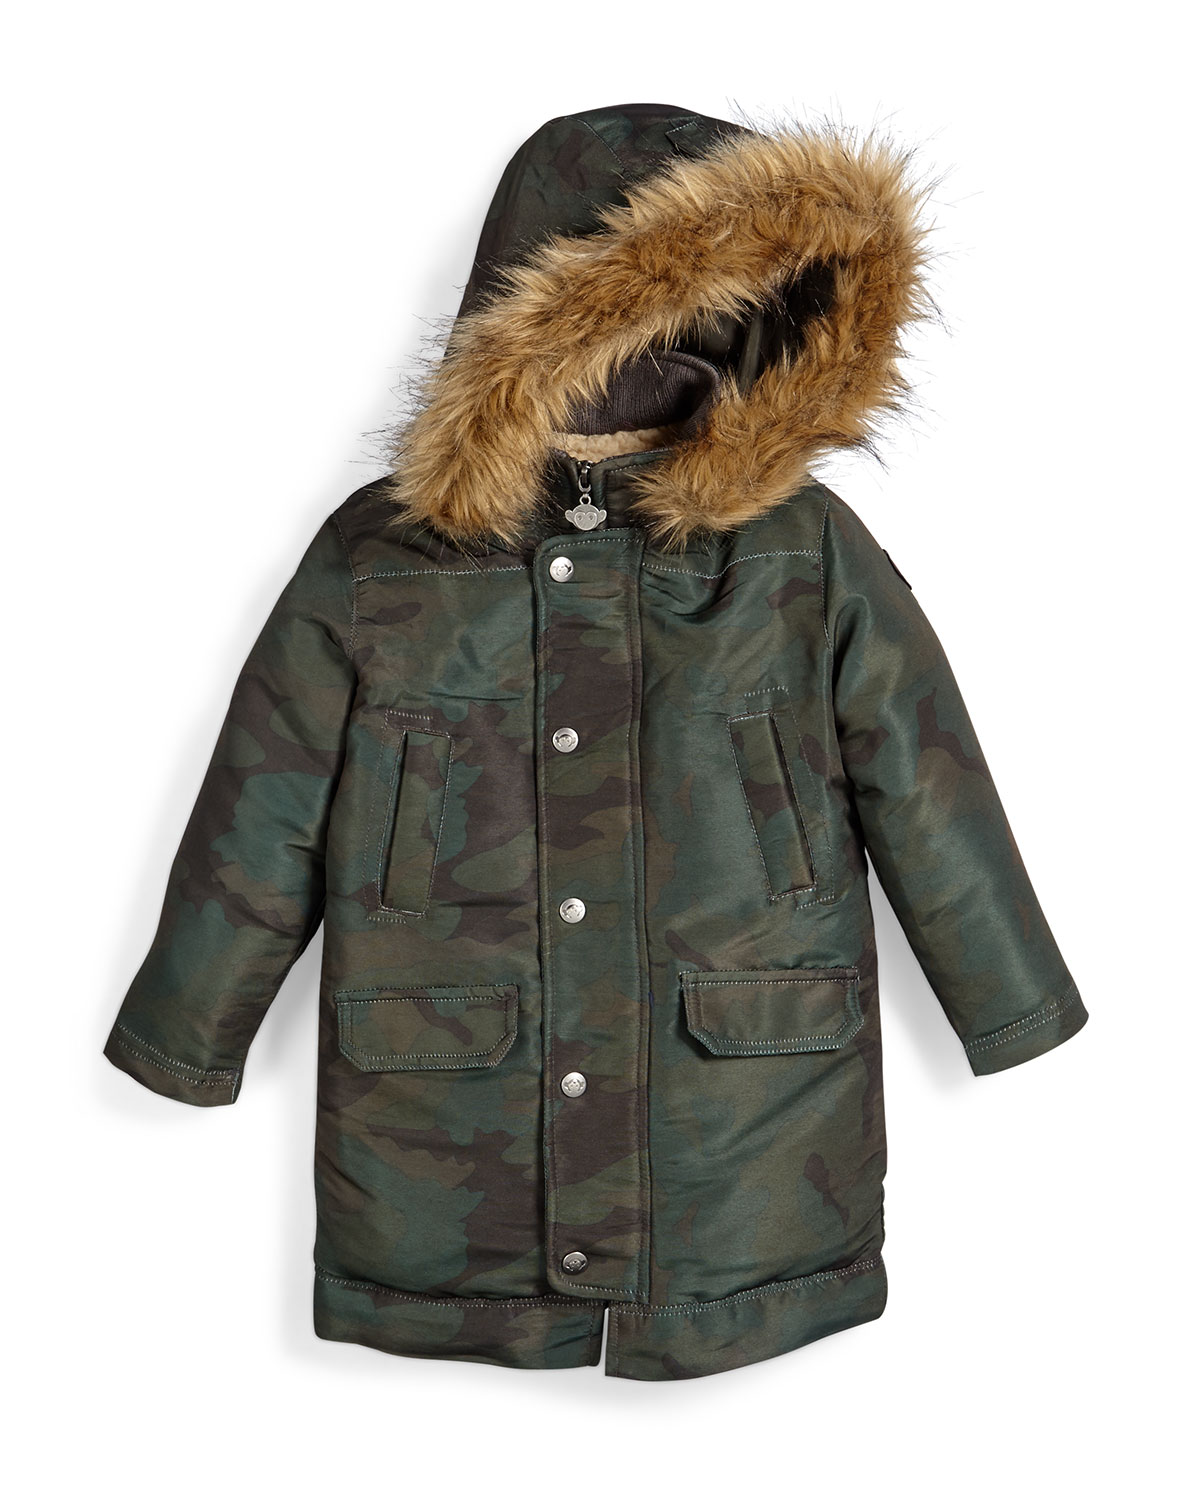 b4b87cad4 Appaman Pratt Hooded Down Parka Coat